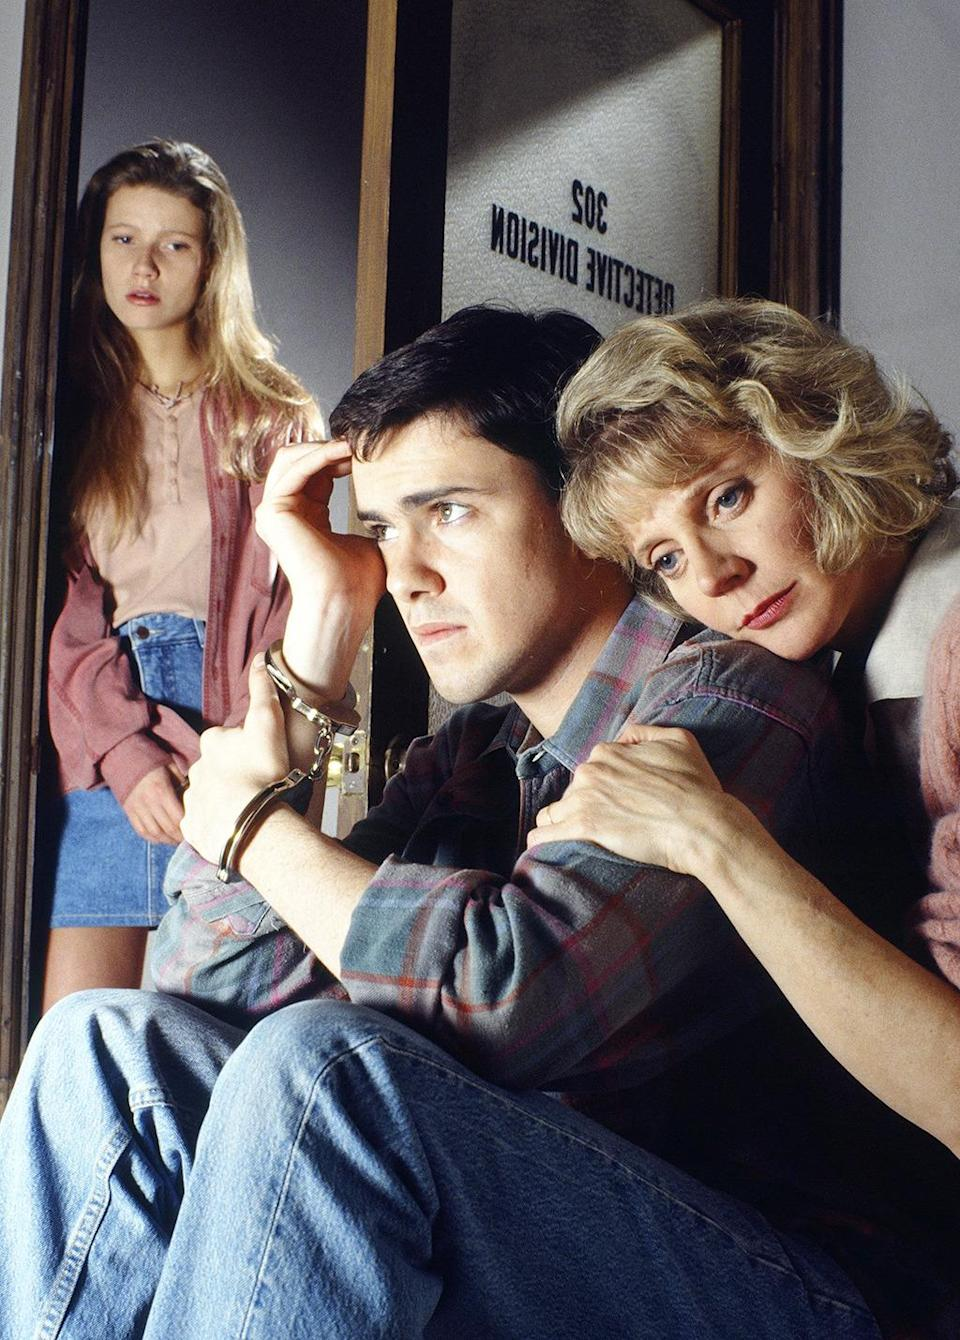 <p><b>Aired:</b> May 17, 1992 on NBC<br><b>Stars:</b> Blythe Danner, Gwyneth Paltrow, Ed Asner, Neal McDonough, John C. McGinley, David Arquette, and Adam Baldwin<br><br><b>Ripped from the headlines about:</b> Chris Pritchard, a <i>Dungeons & Dragons</i> obsessed 20-year-old who was convicted of conspiring with friends in the murder of his stepfather — and attempted murder of his mother — to get a $2 million inheritance. Mother and daughter Danner and Paltrow play Pritchard's mother and sister in another movie based on a Joe McGinniss book. The real Pritchard was given a life sentence in 1990, and paroled in 2007. The movie received an Emmy nomination as Outstanding Miniseries.<br><br><i>(Credit: Getty Images)</i> </p>